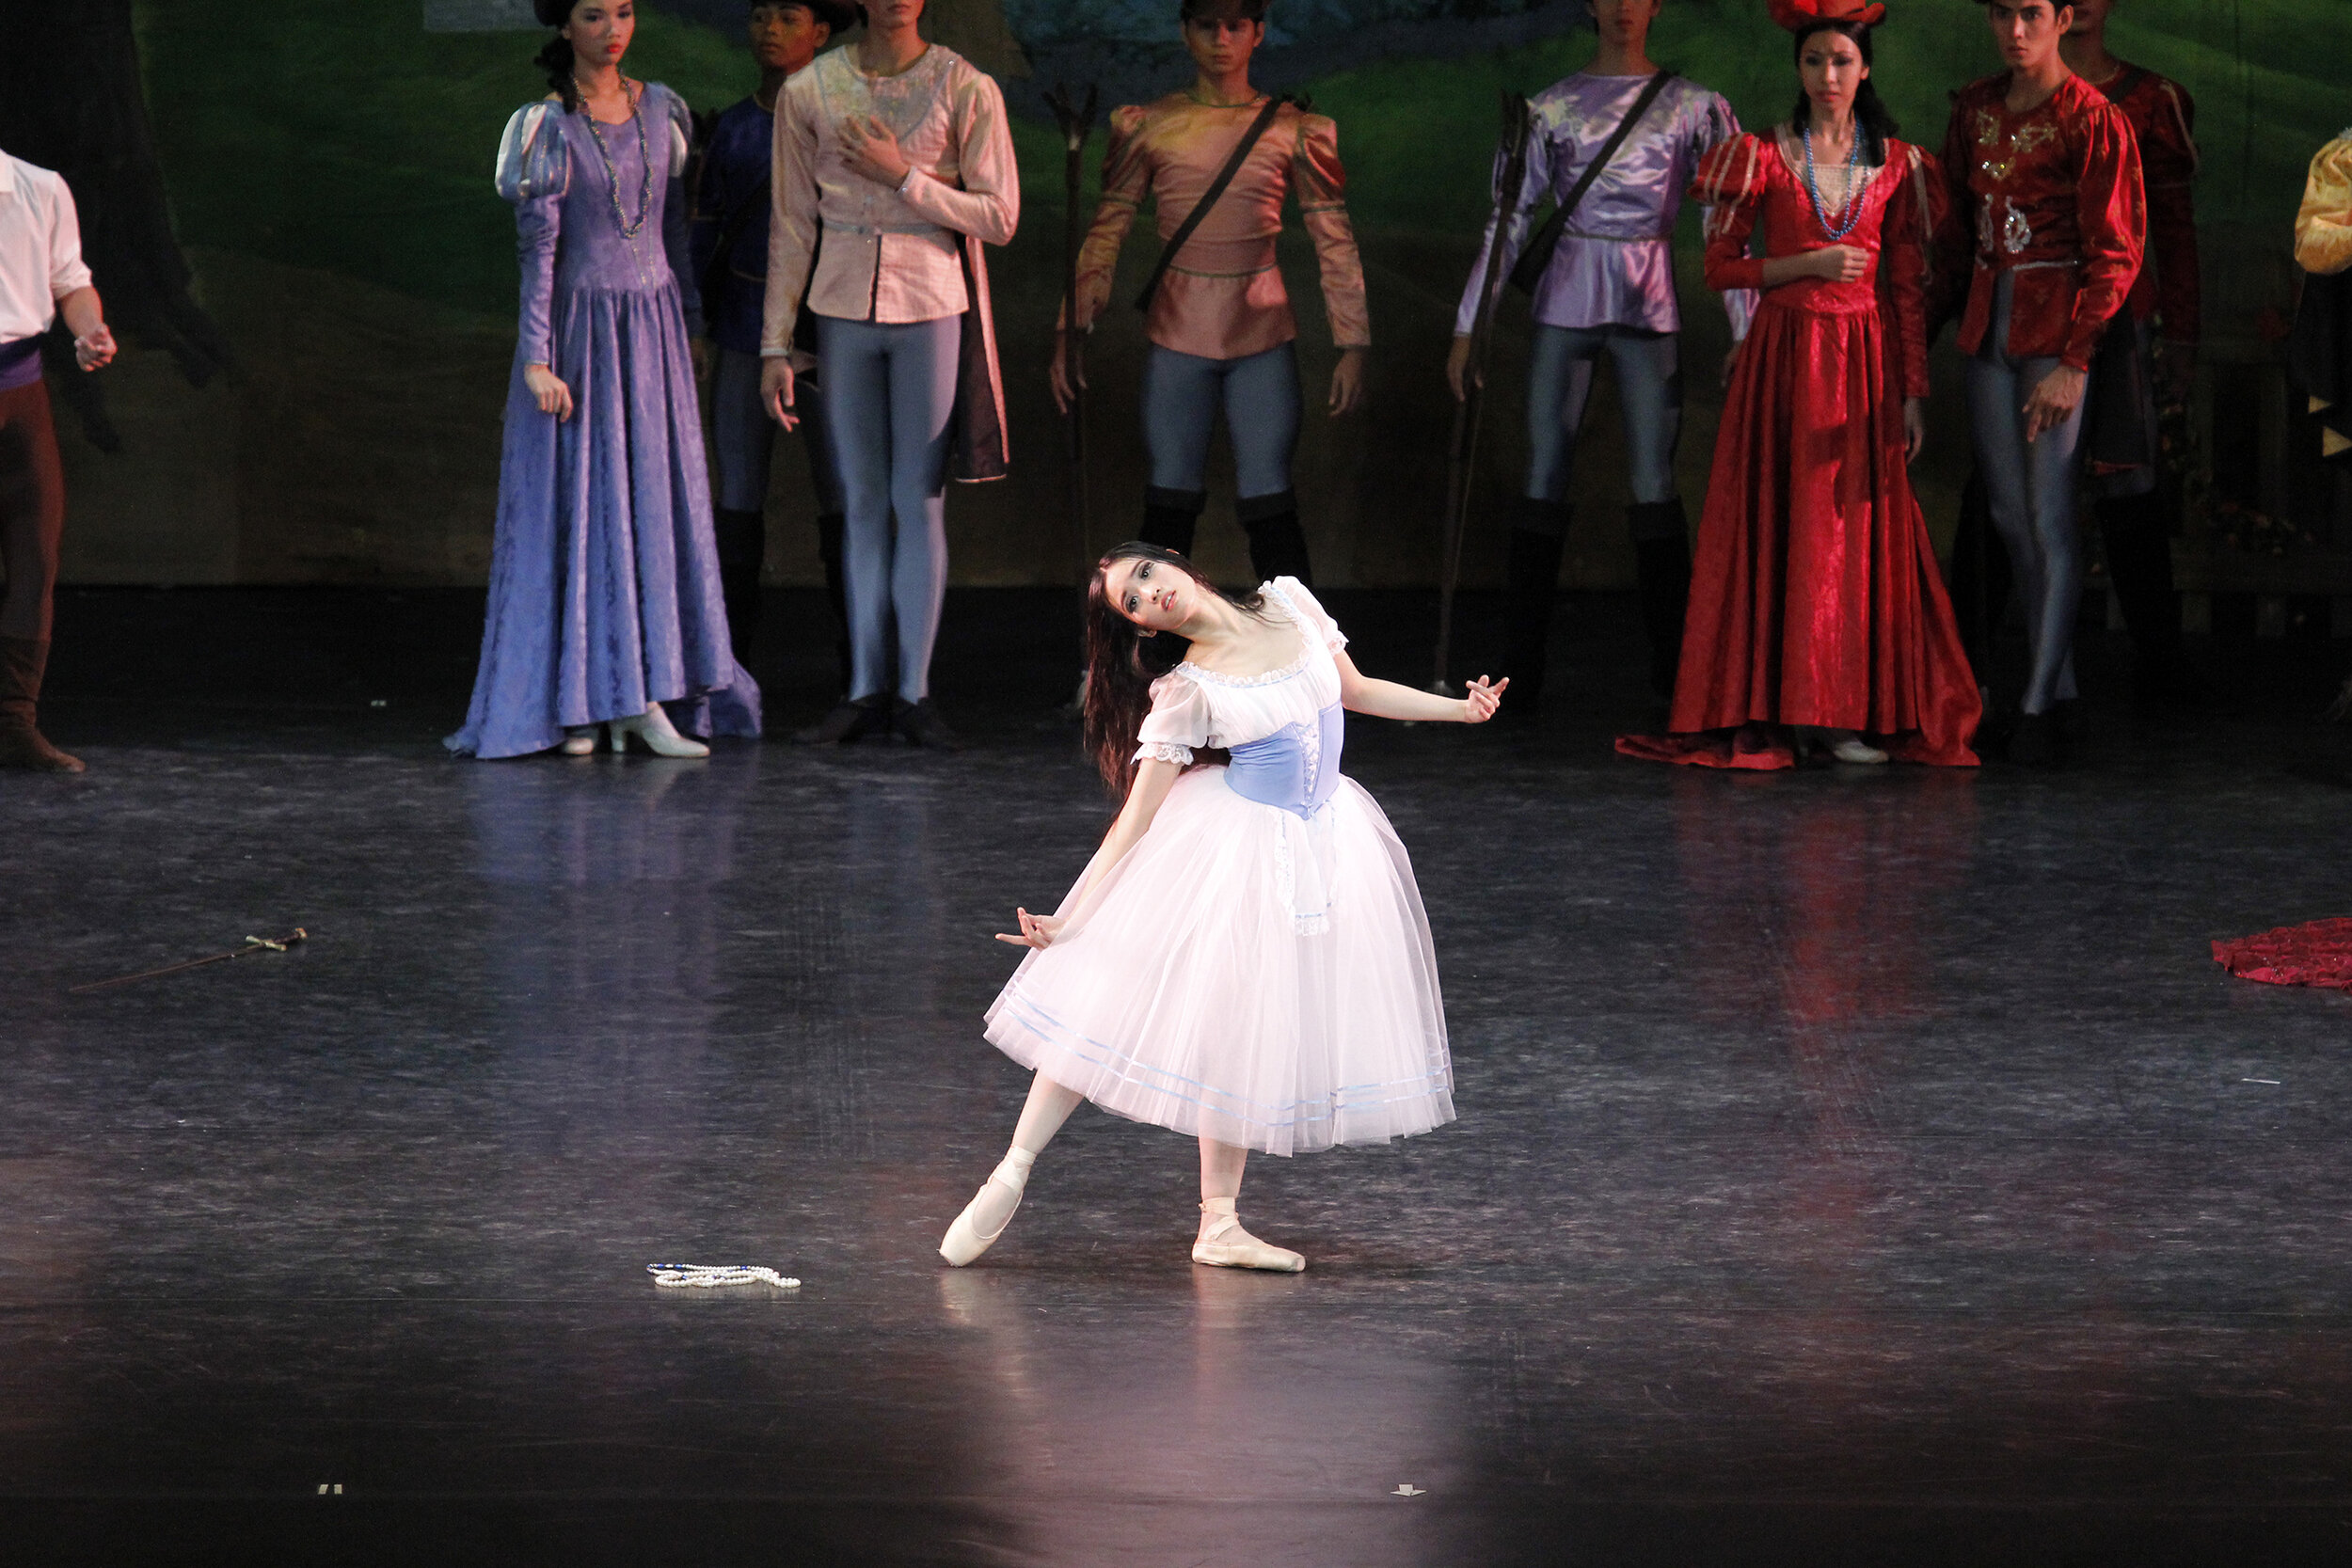 Joan Emery Sia as Giselle descends into madness upon learning of Albrecht's deception. Photo by Ocs Alvarez